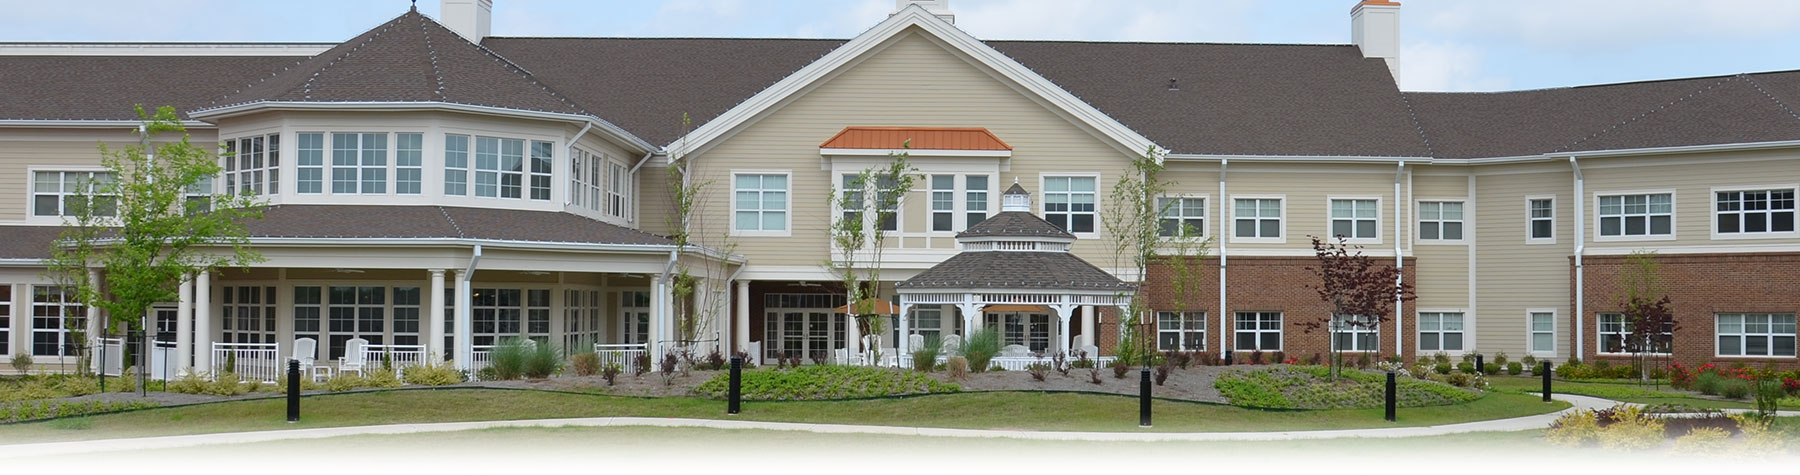 Savannah-at-The-Oaks